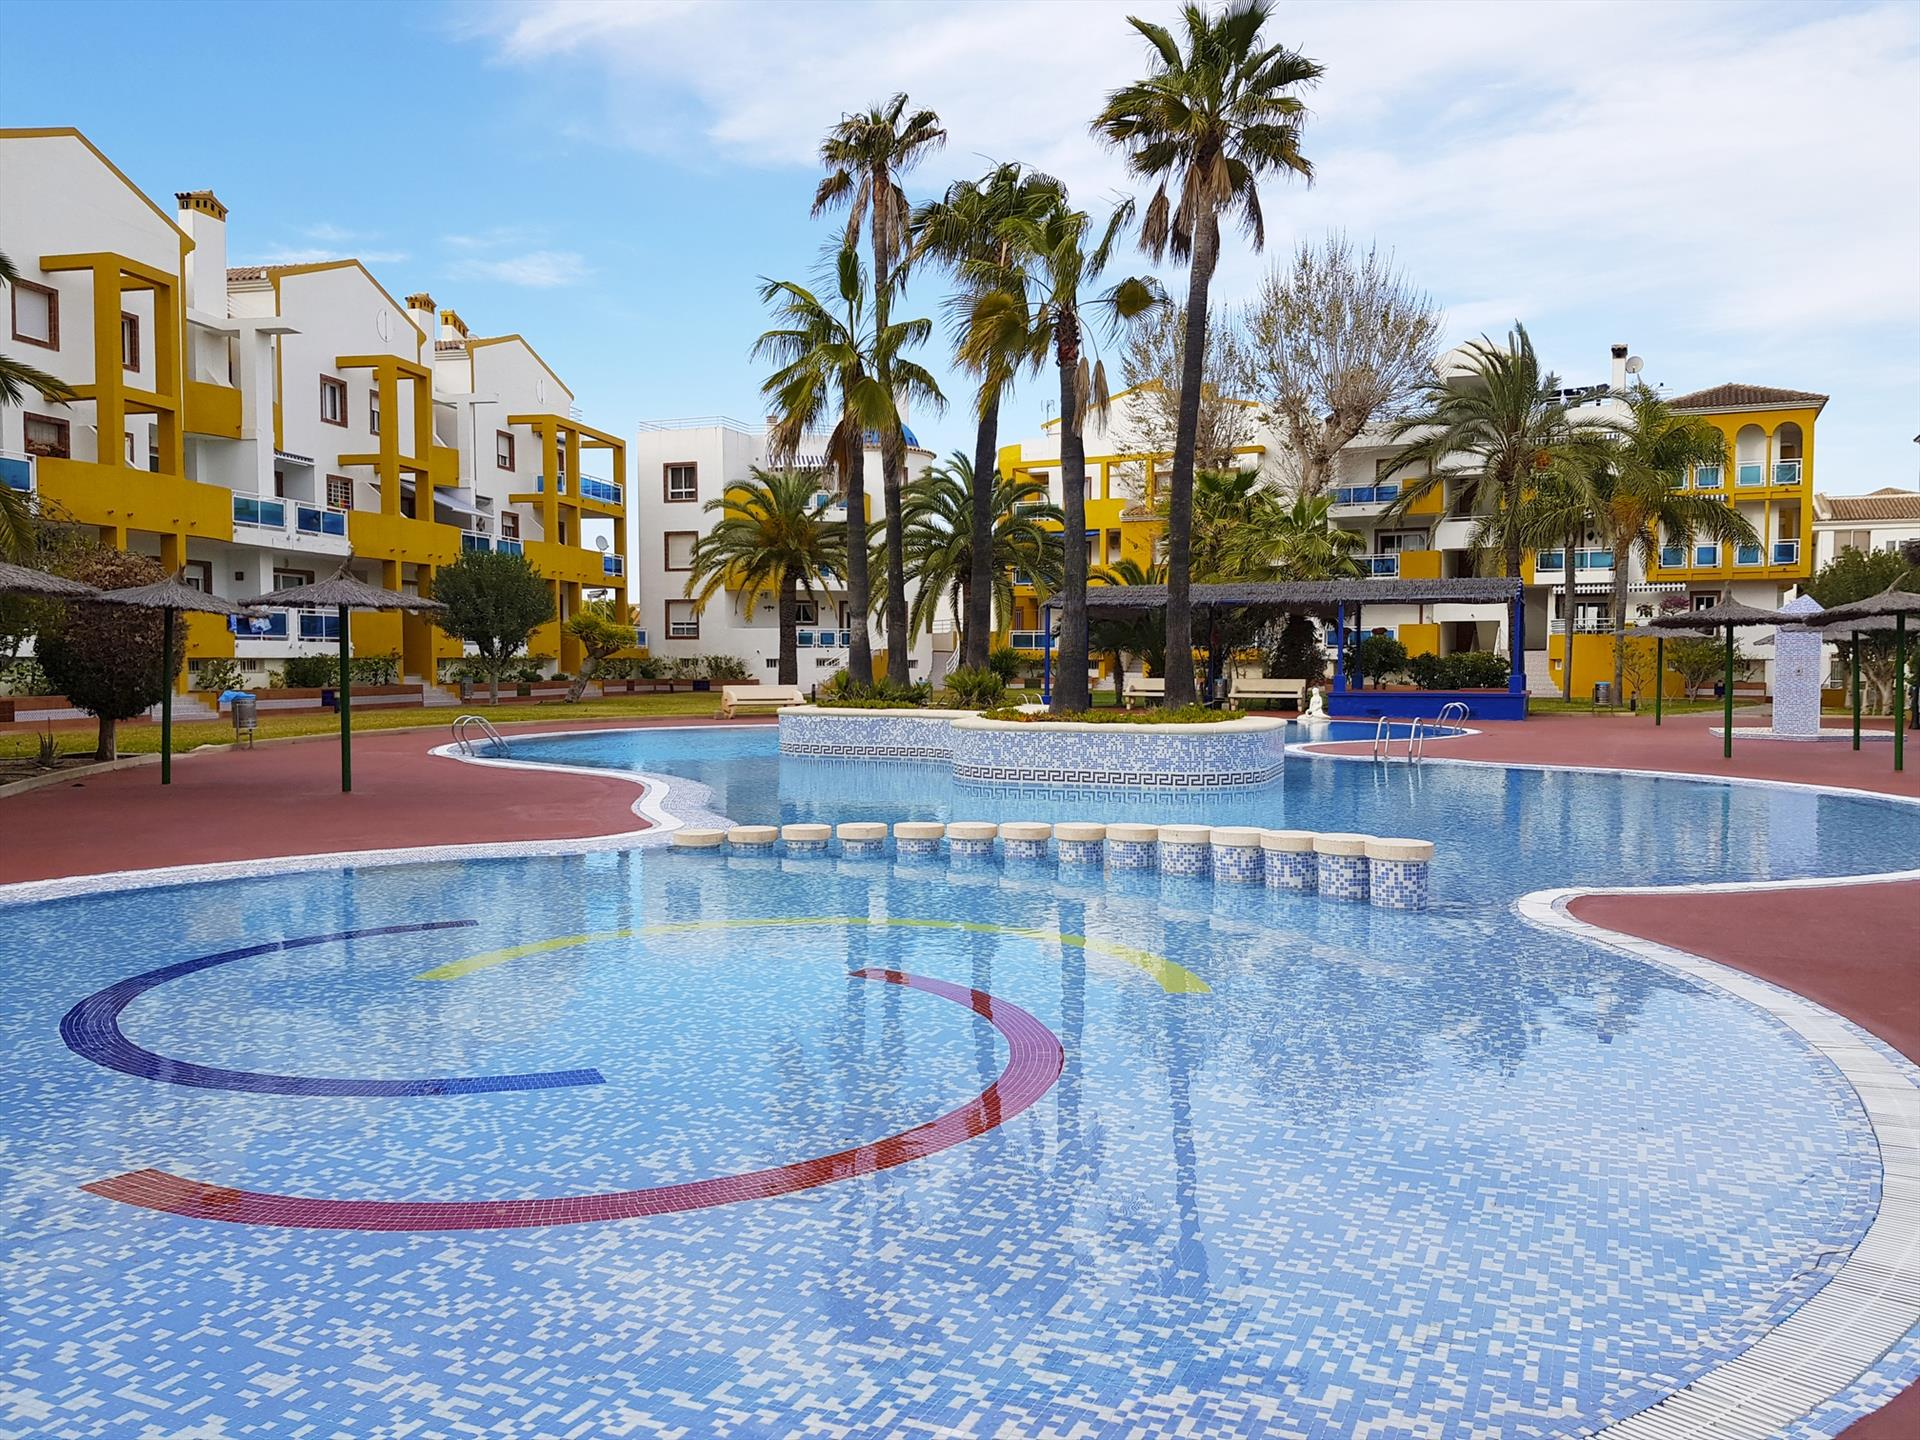 AP101 Apartamento Playa de San Fernando calle Joan de Joanes, Beautiful and romantic apartment in Oliva, on the Costa Blanca, Spain  with communal pool for 4 persons.....